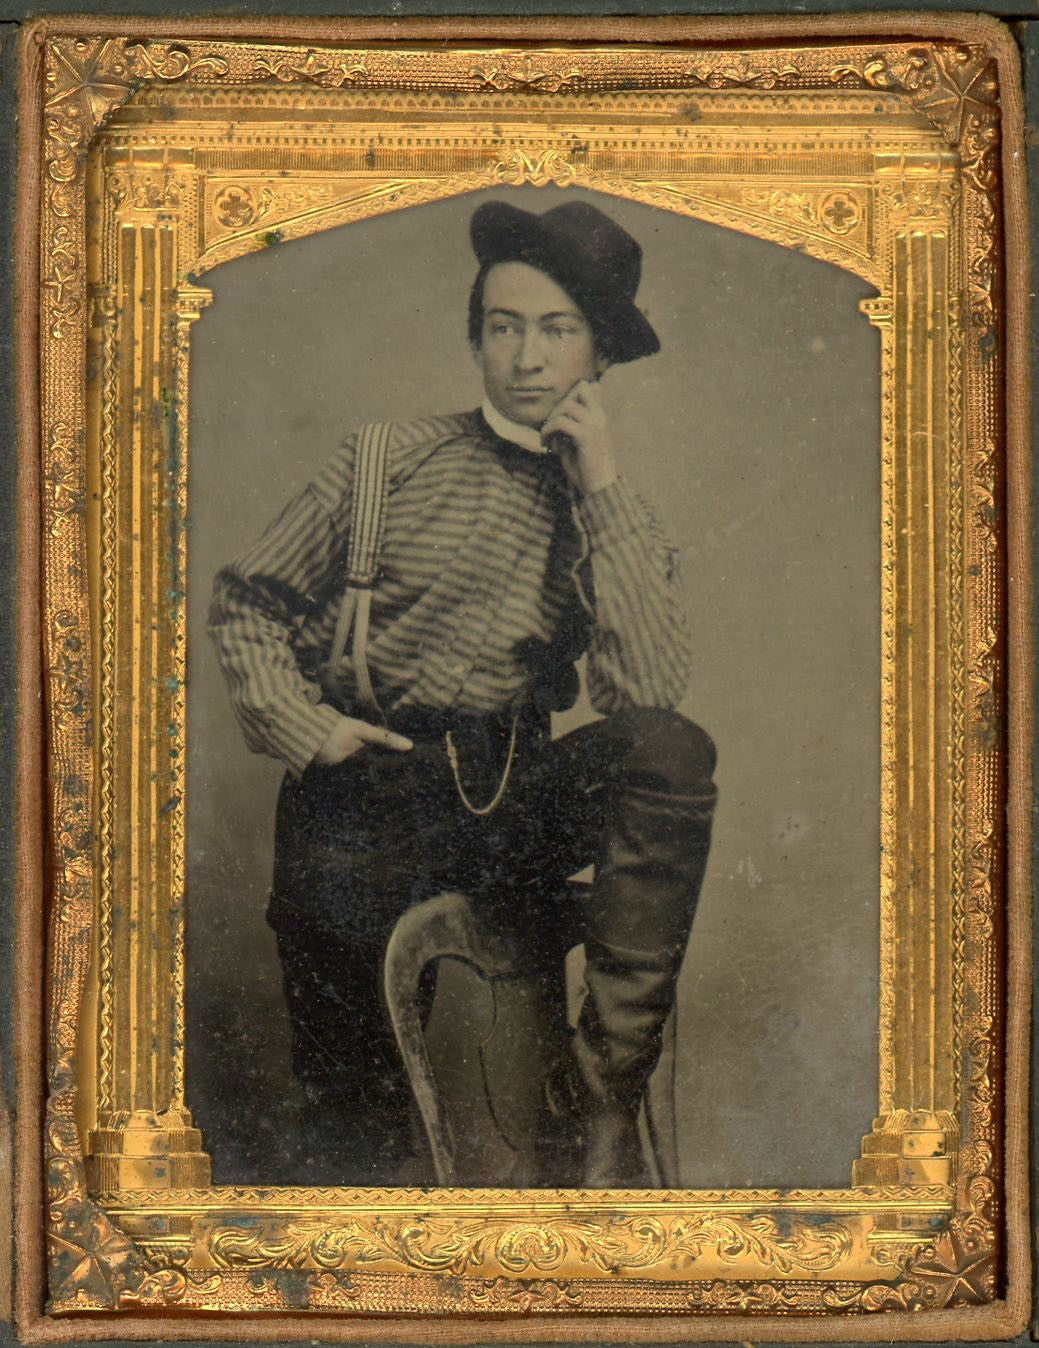 Image of Tintype of a young and handsome man